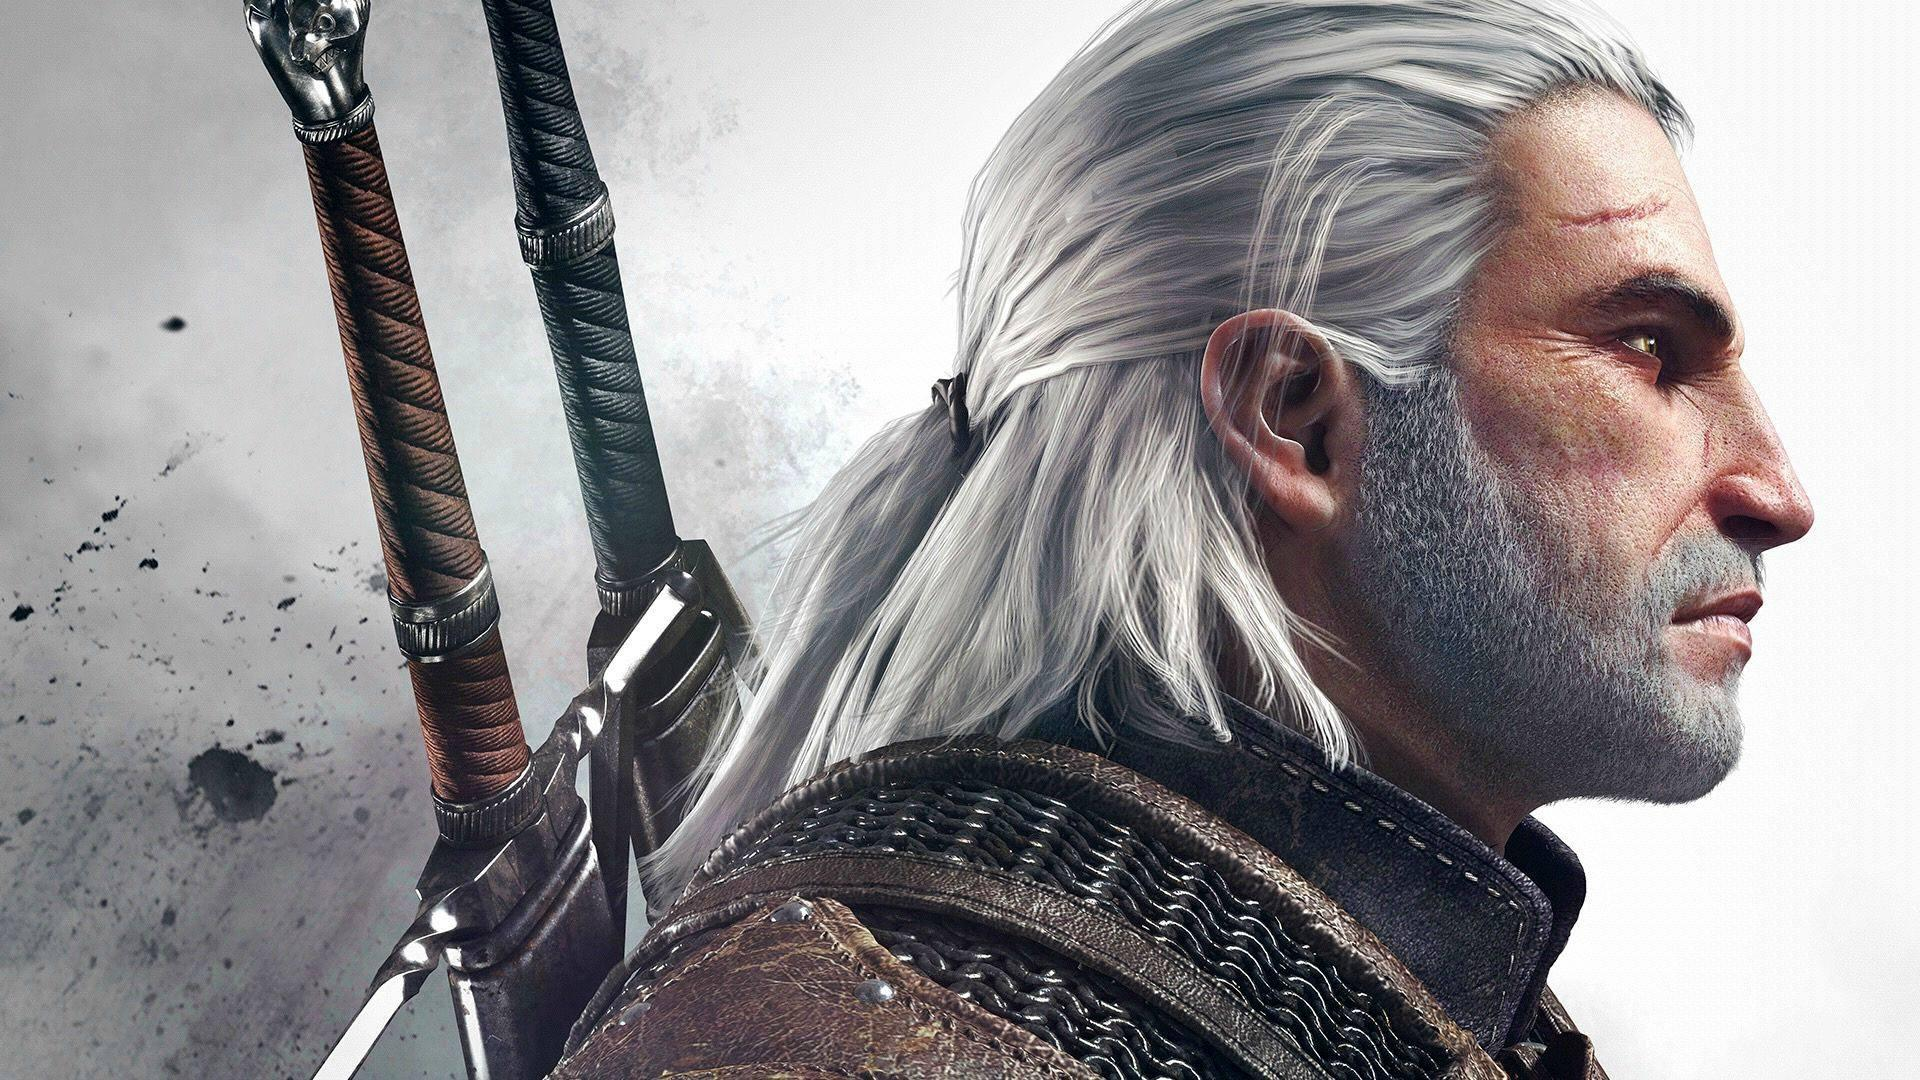 The Witcher Serie de Televisión en 2019